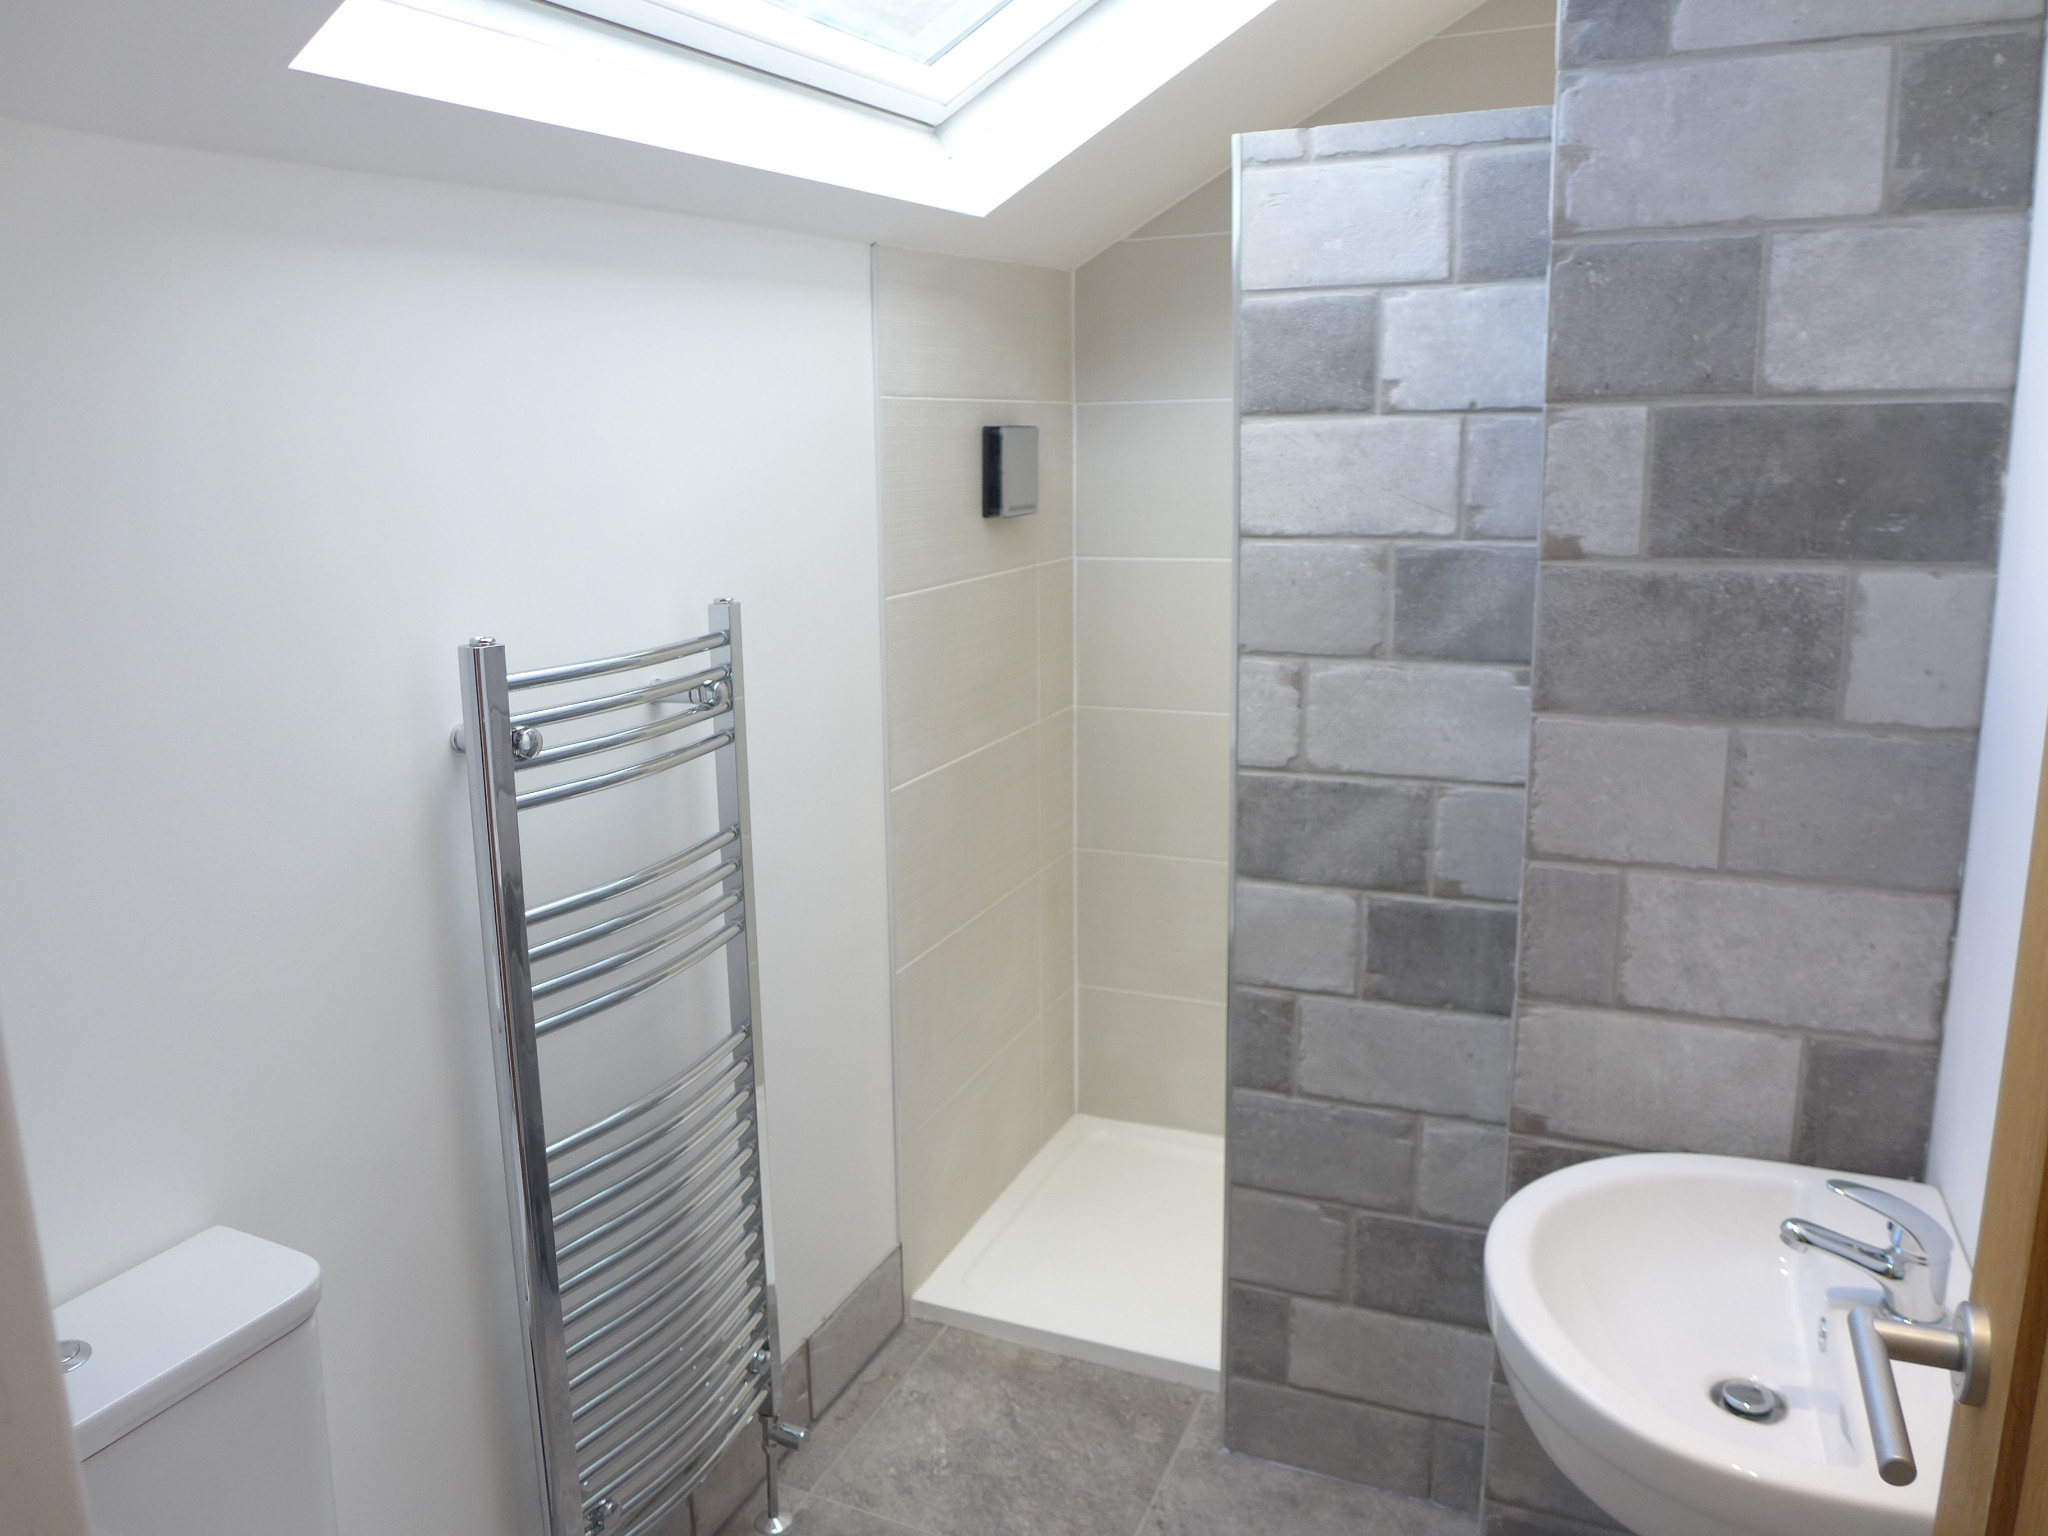 3 bedroom mid terraced house For Sale in Todmorden - Photograph 16.